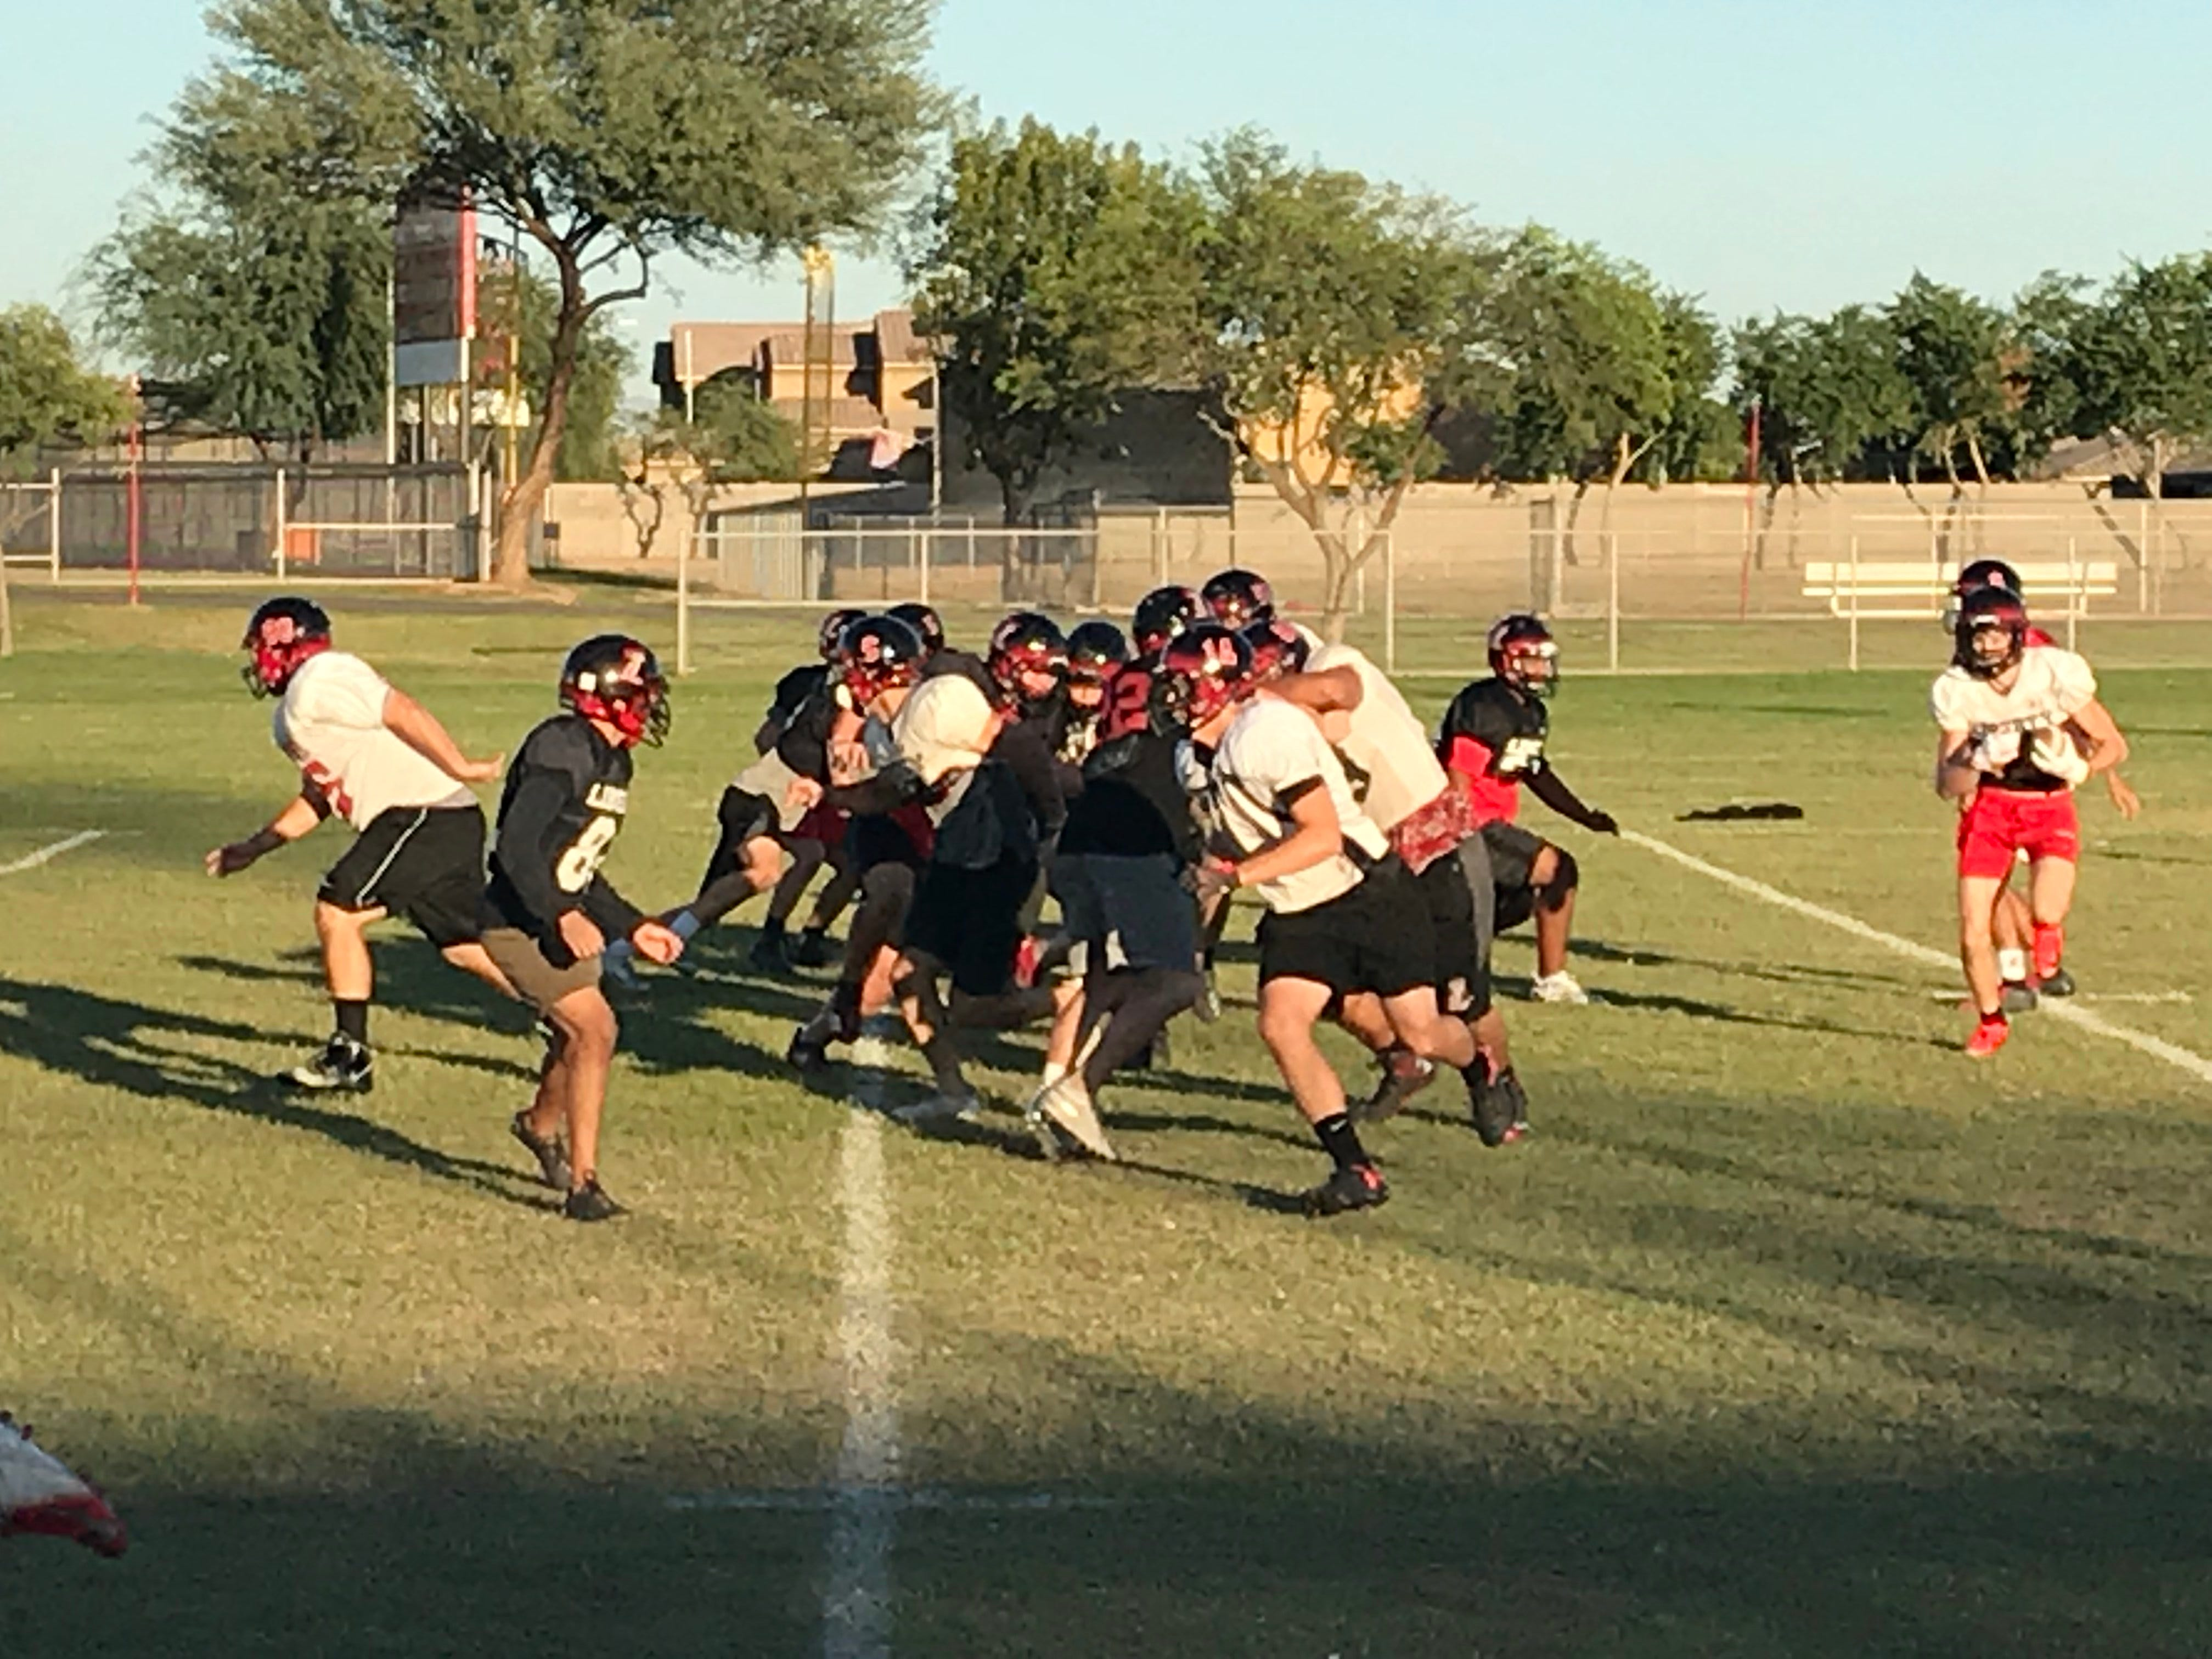 Oct 11, 2018: Peoria Liberty football teams practices to prepare for Phoenix Pinnacle